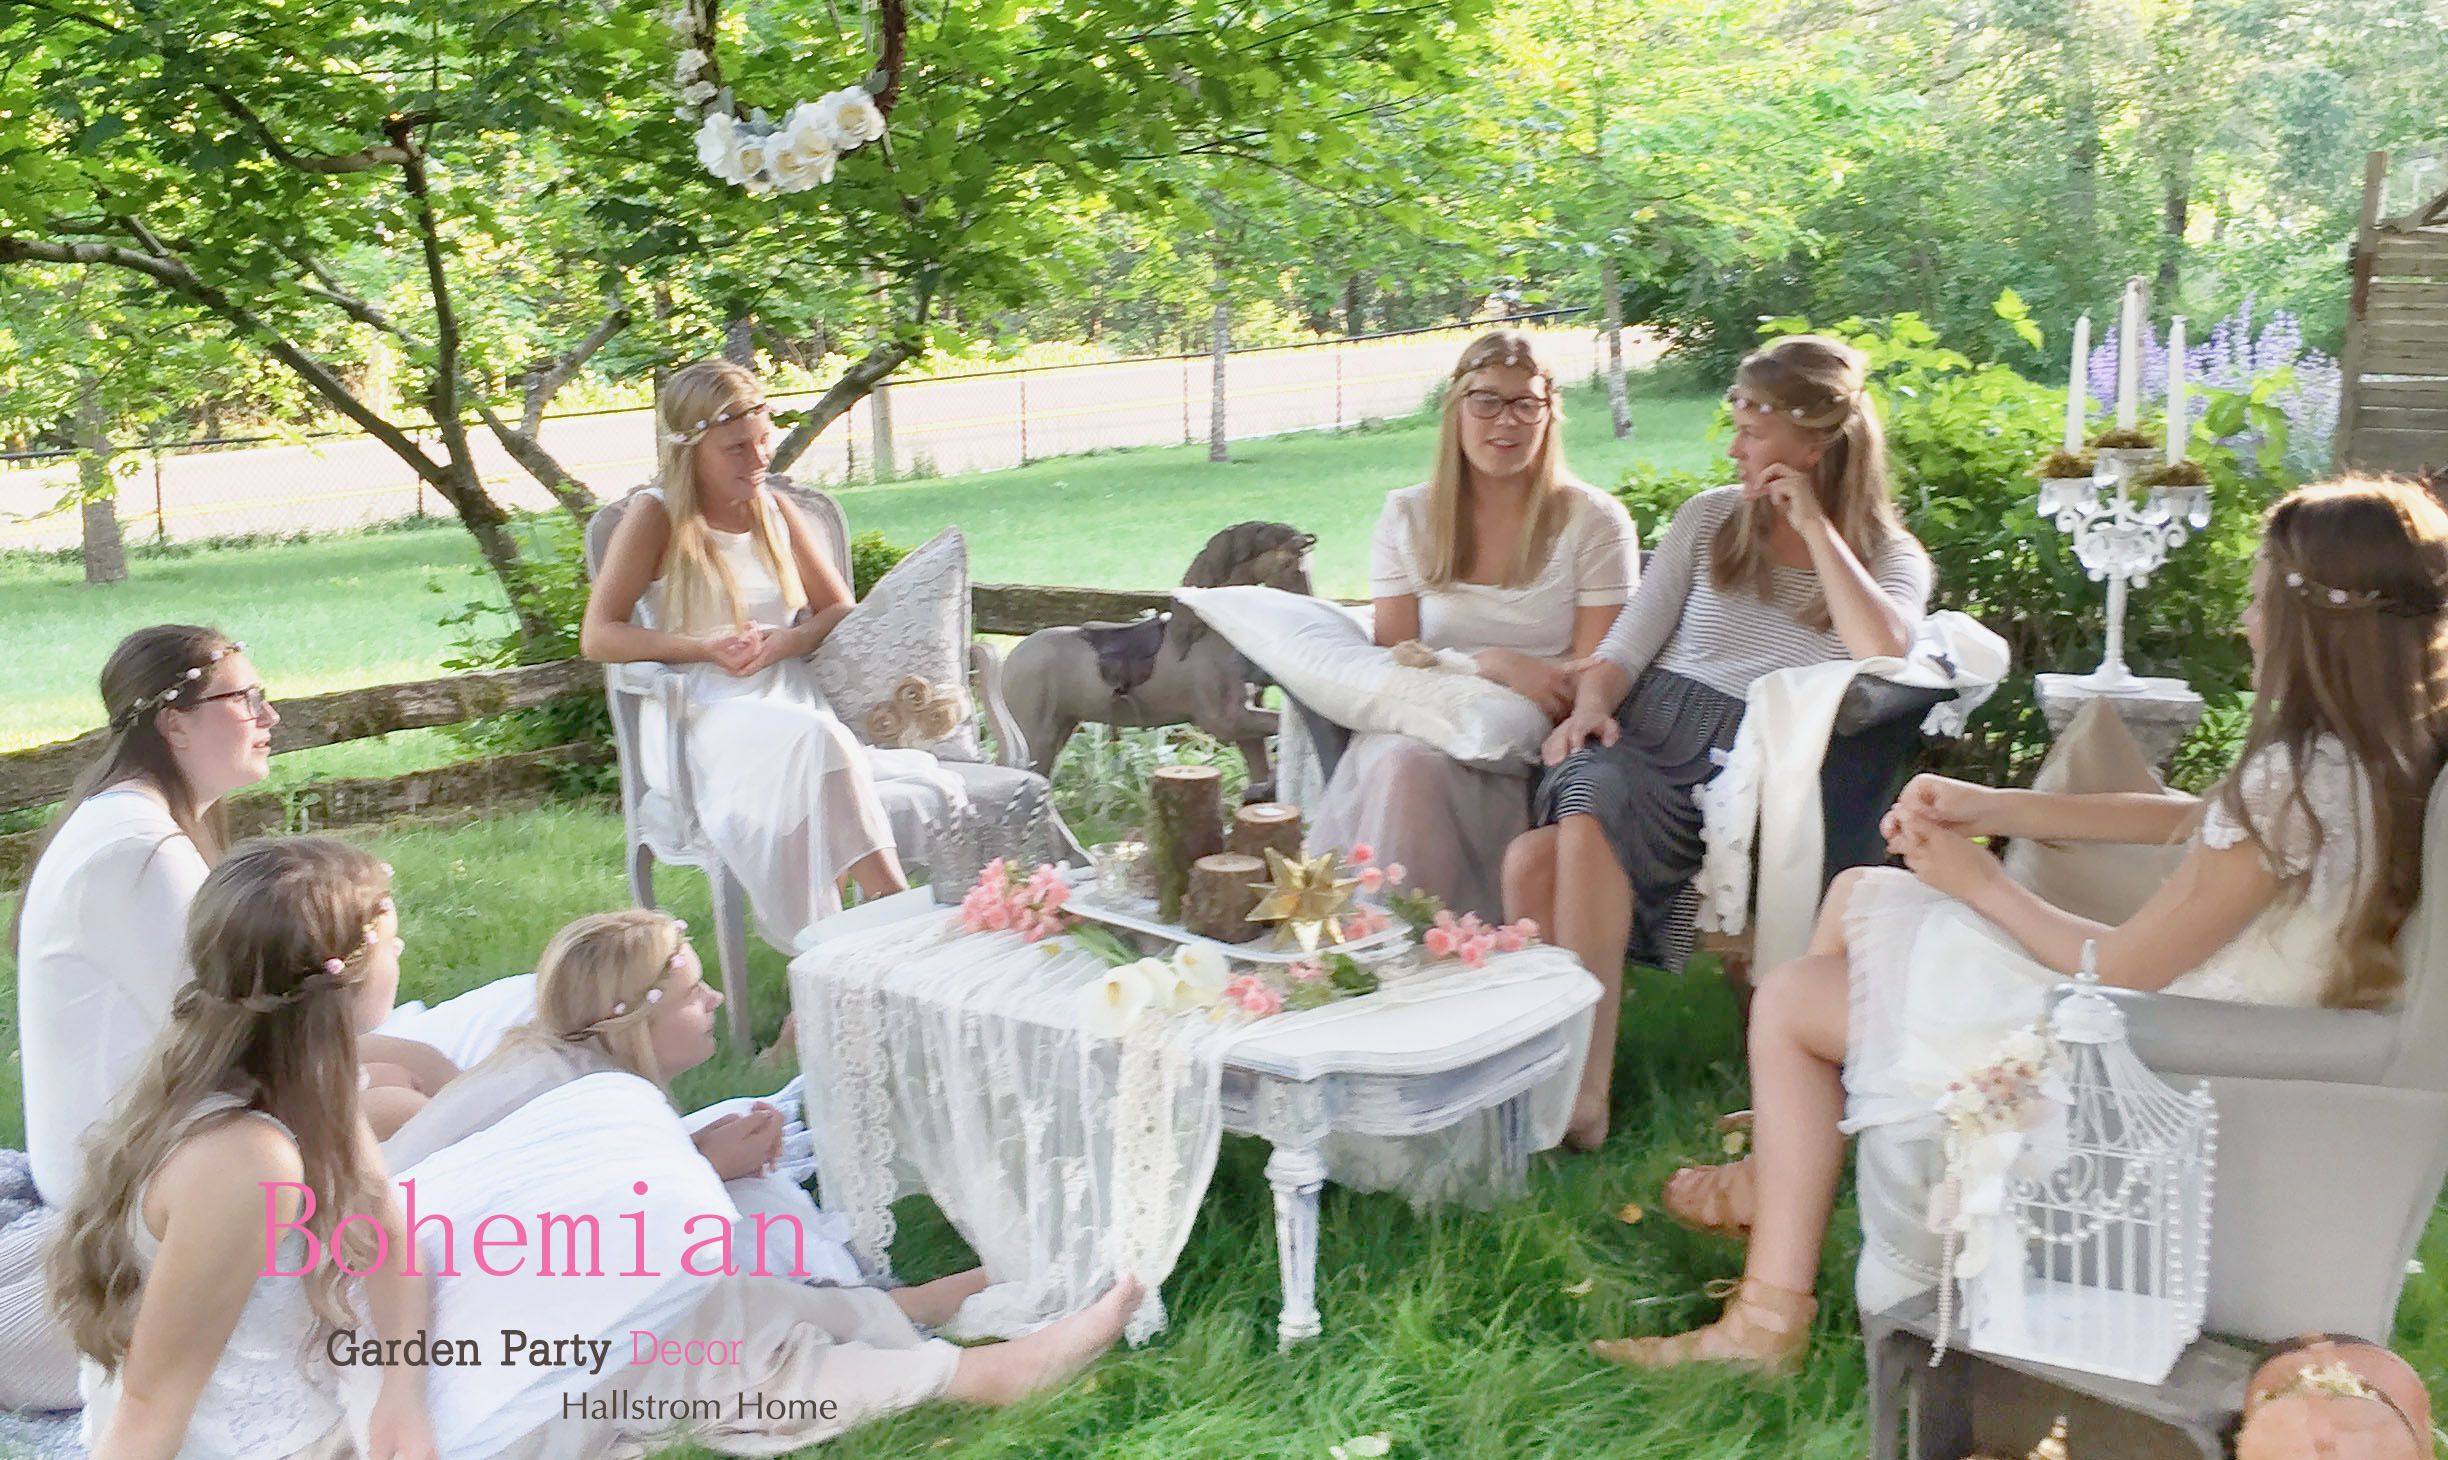 Bohemian Garden Party Decor - Hallstrom Home - Featured Image